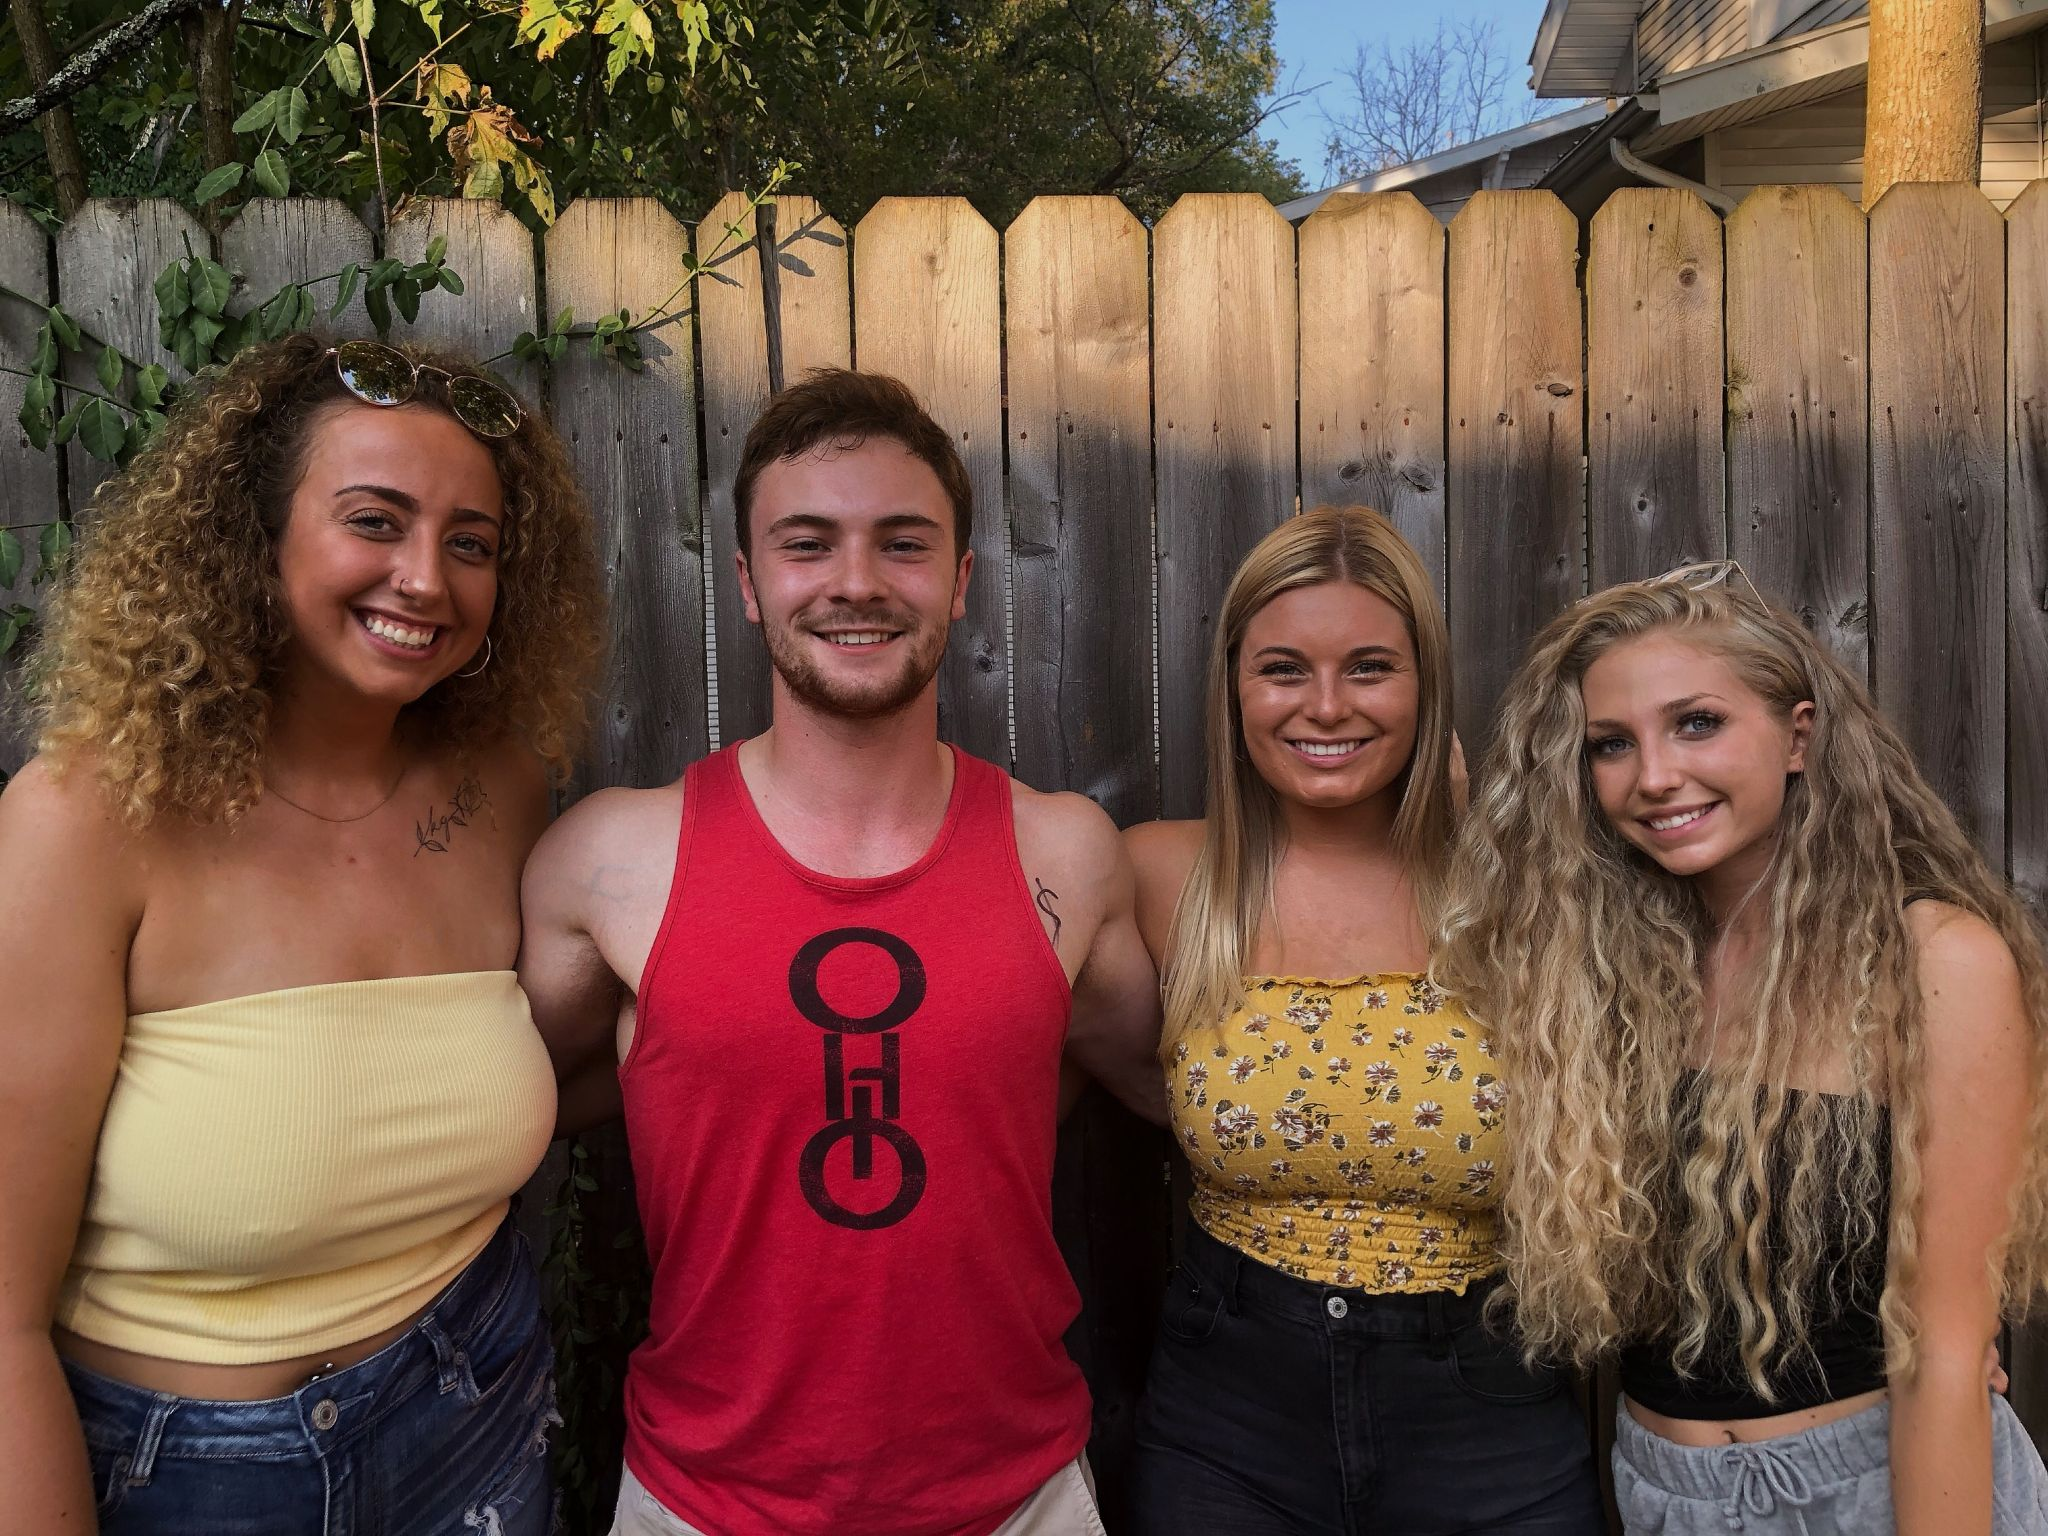 Finding Friendship Thanks to Law, Justice & Culture: a Story of Four Ohio University Students